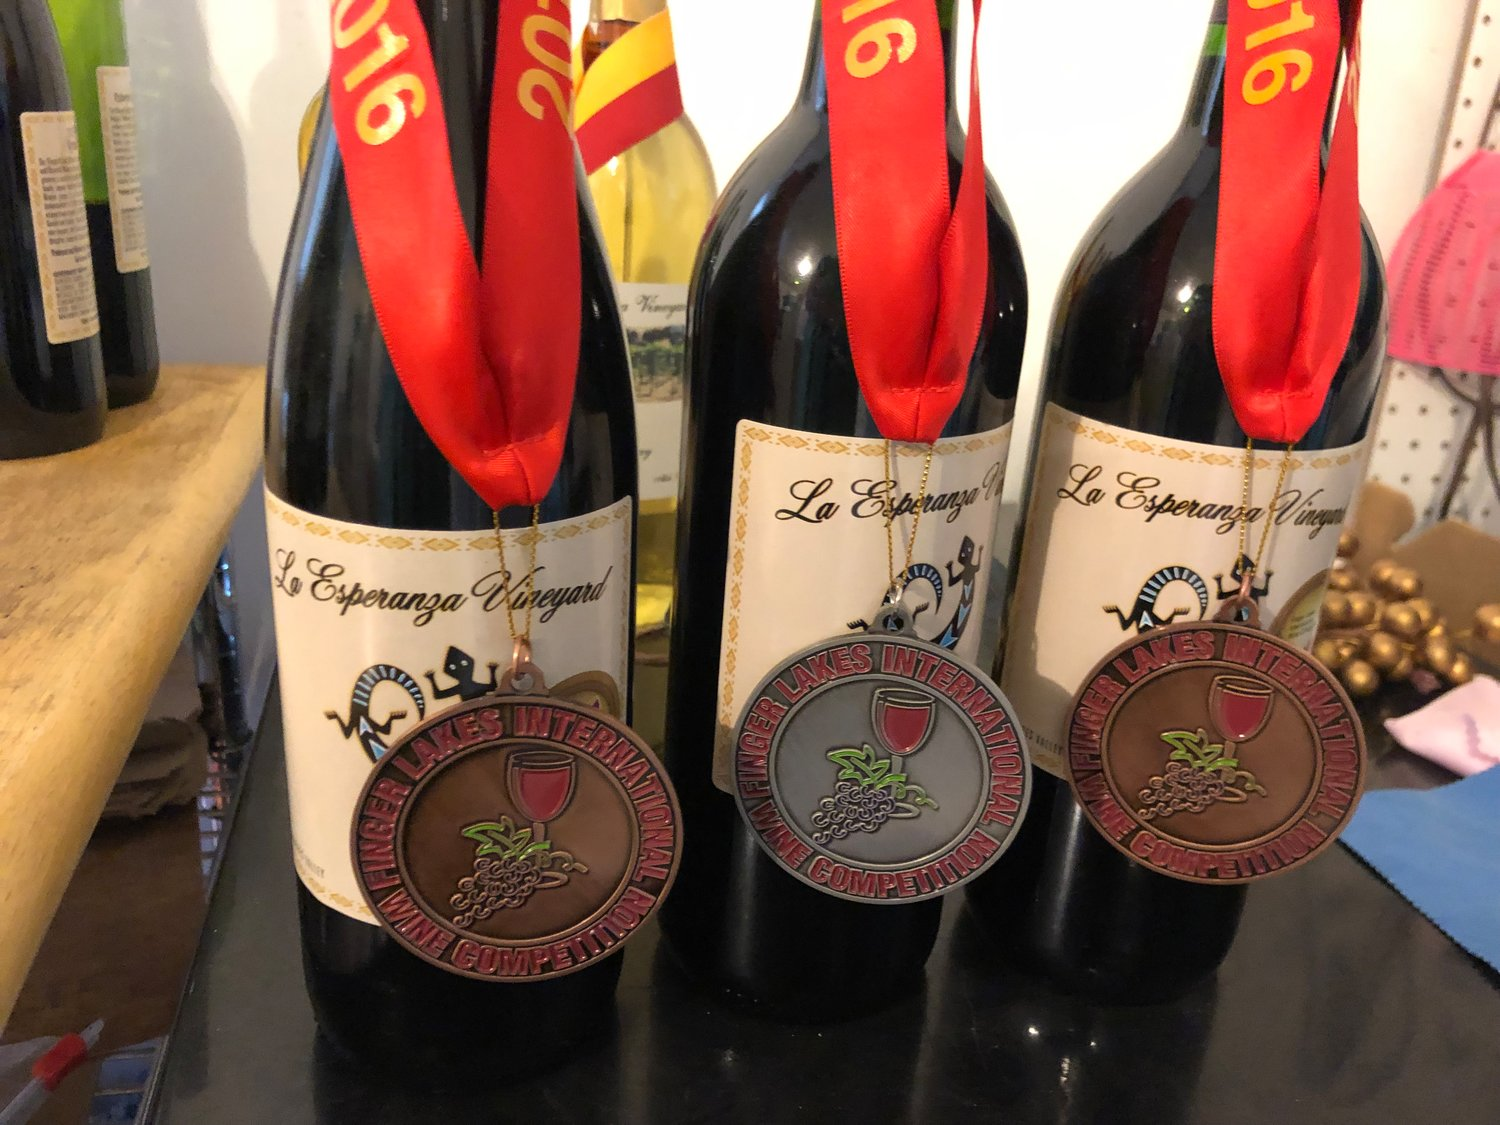 La Esperanza wines are no stranger to winning both state and national awards over the years.